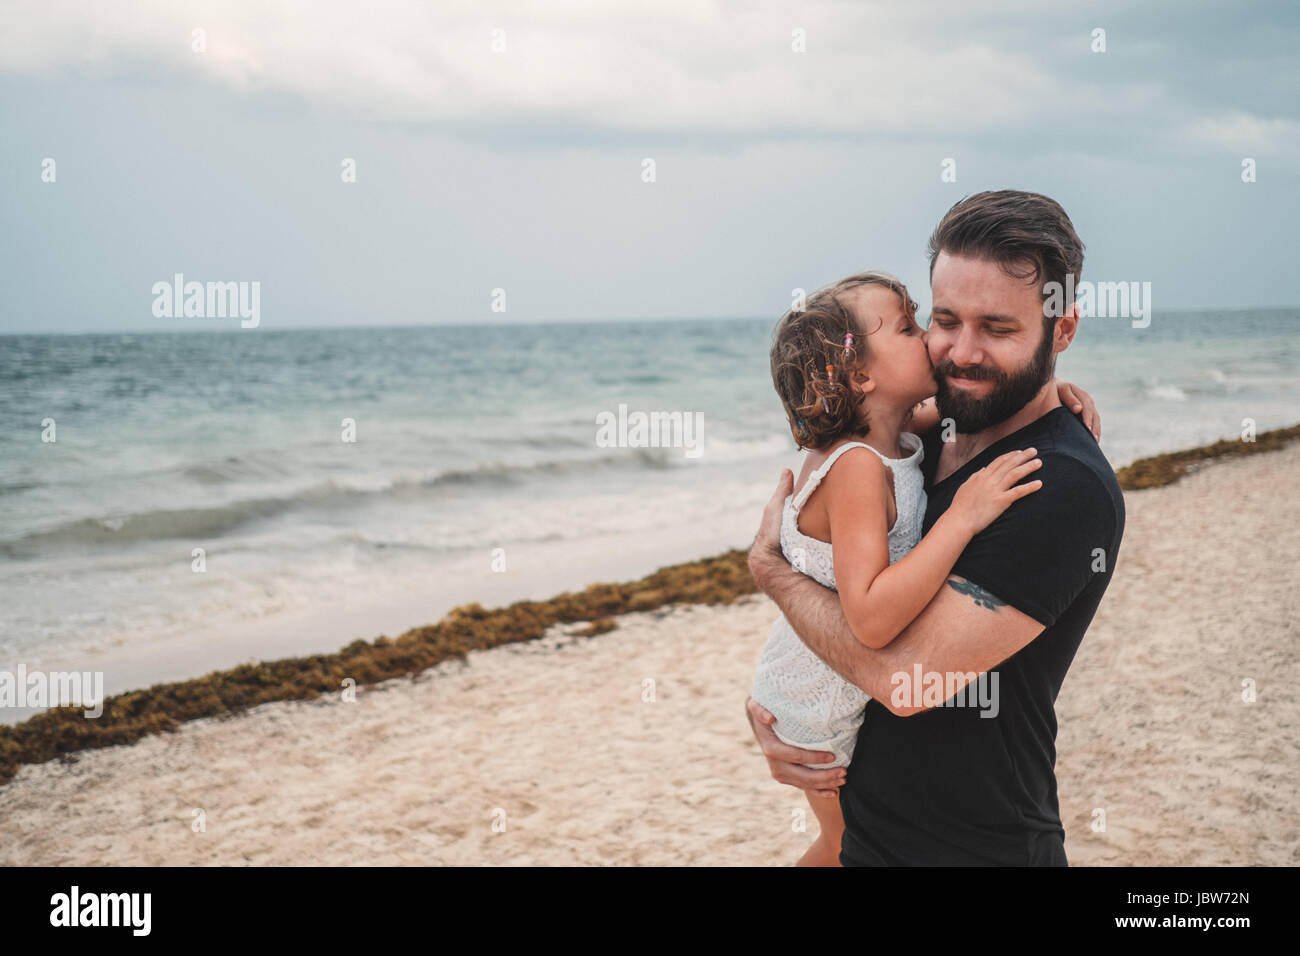 Father kissing daughter on beach, Cancun, Mexico Stock Photo